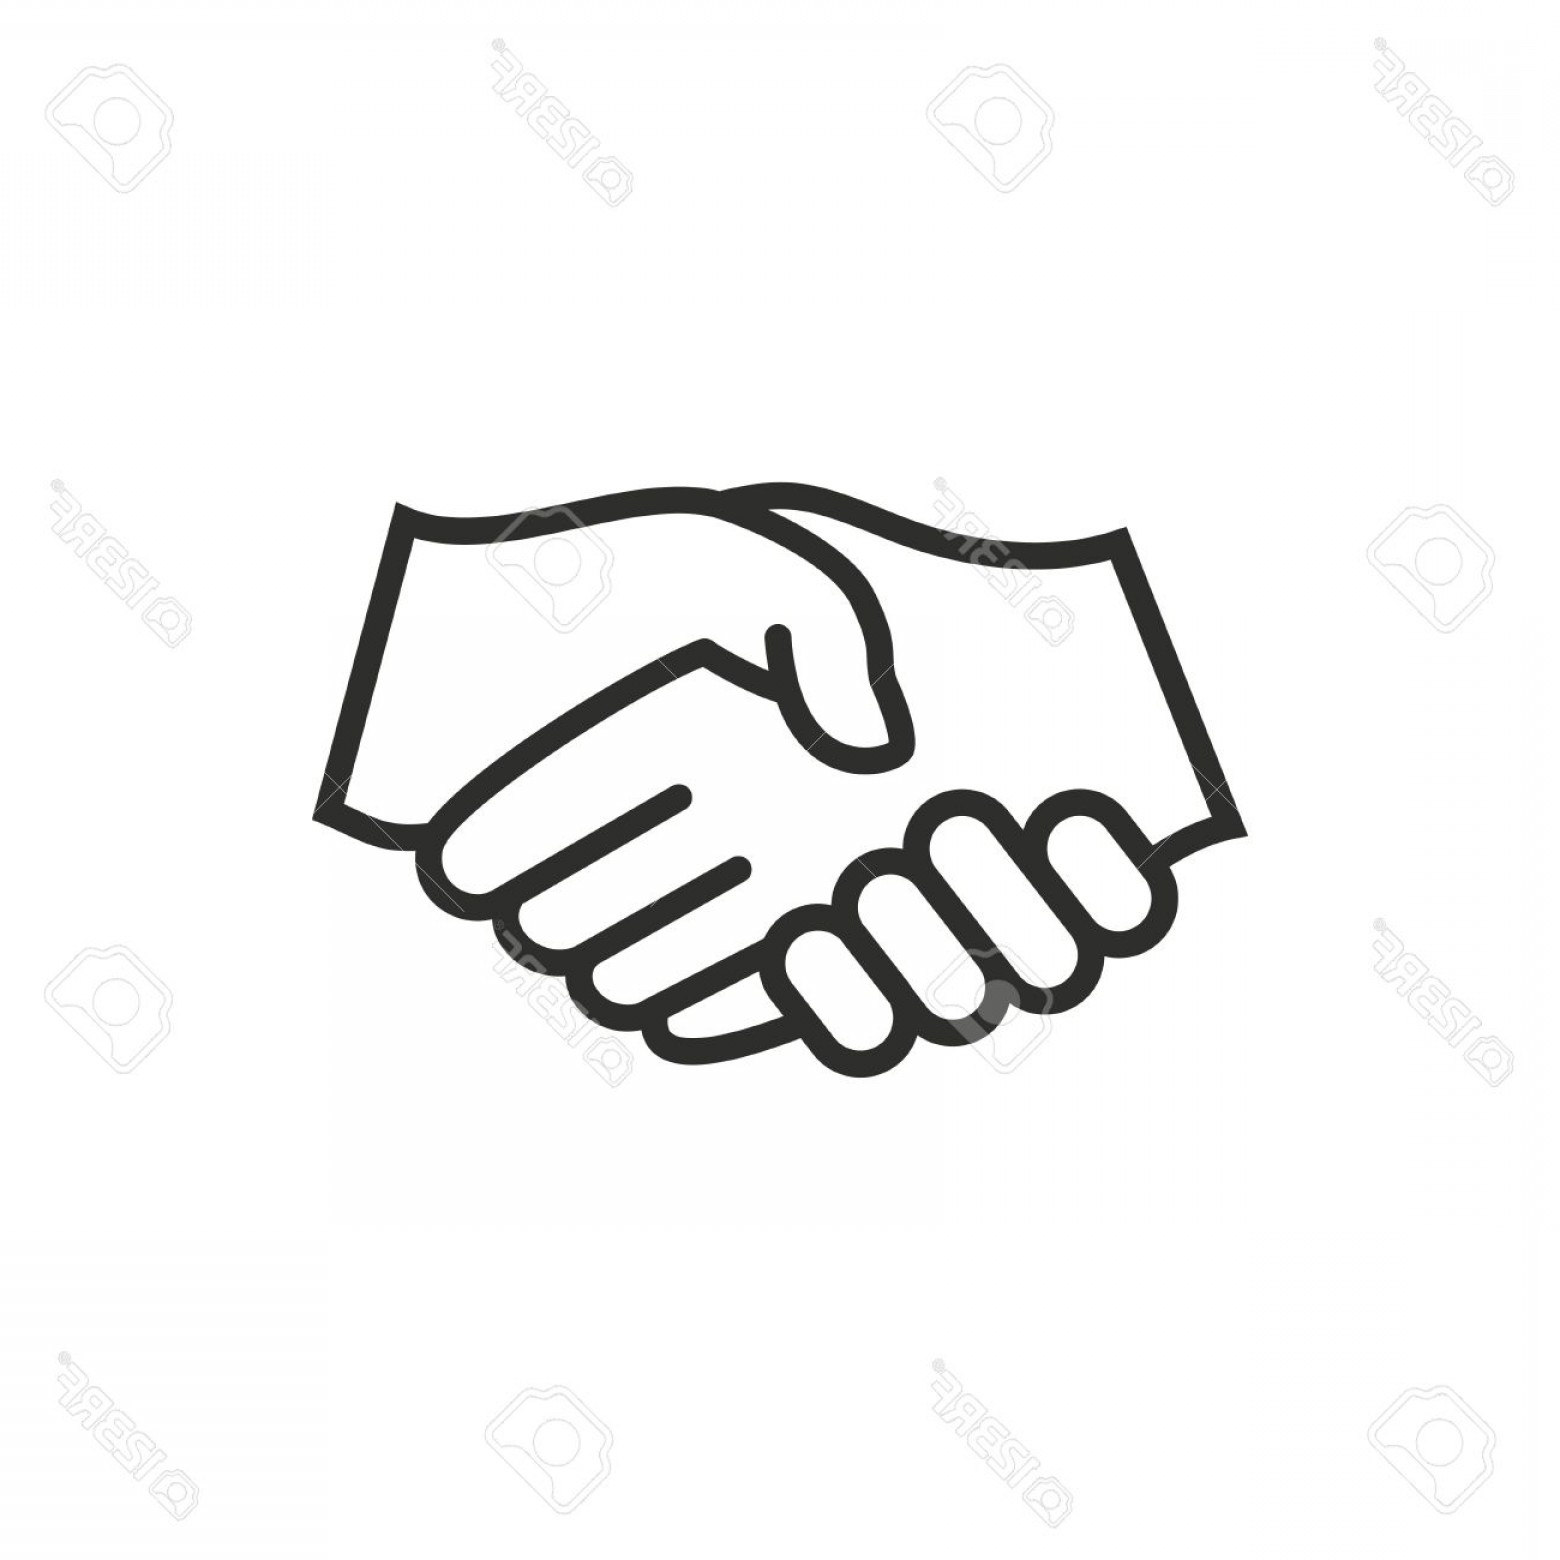 Handshake Vector Art: Photostock Vector Handshake Vector Icon Black Illustration Isolated On White Background For Graphic And Web Design